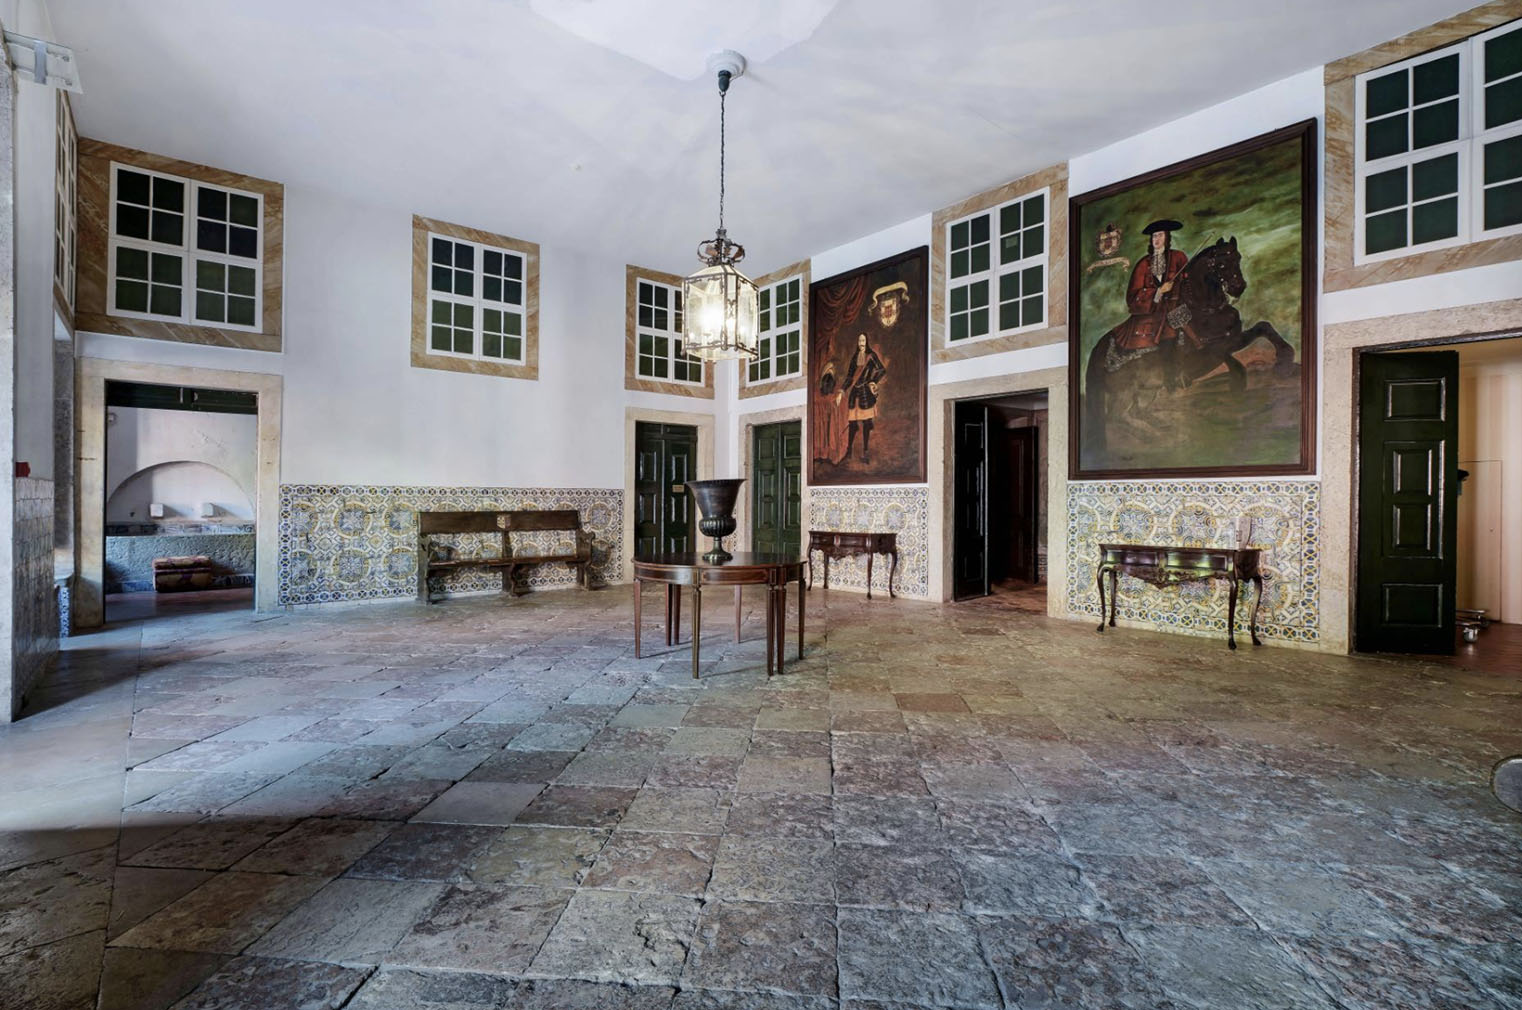 Xabregas Palace in Marvila for sale via Sotheby's International